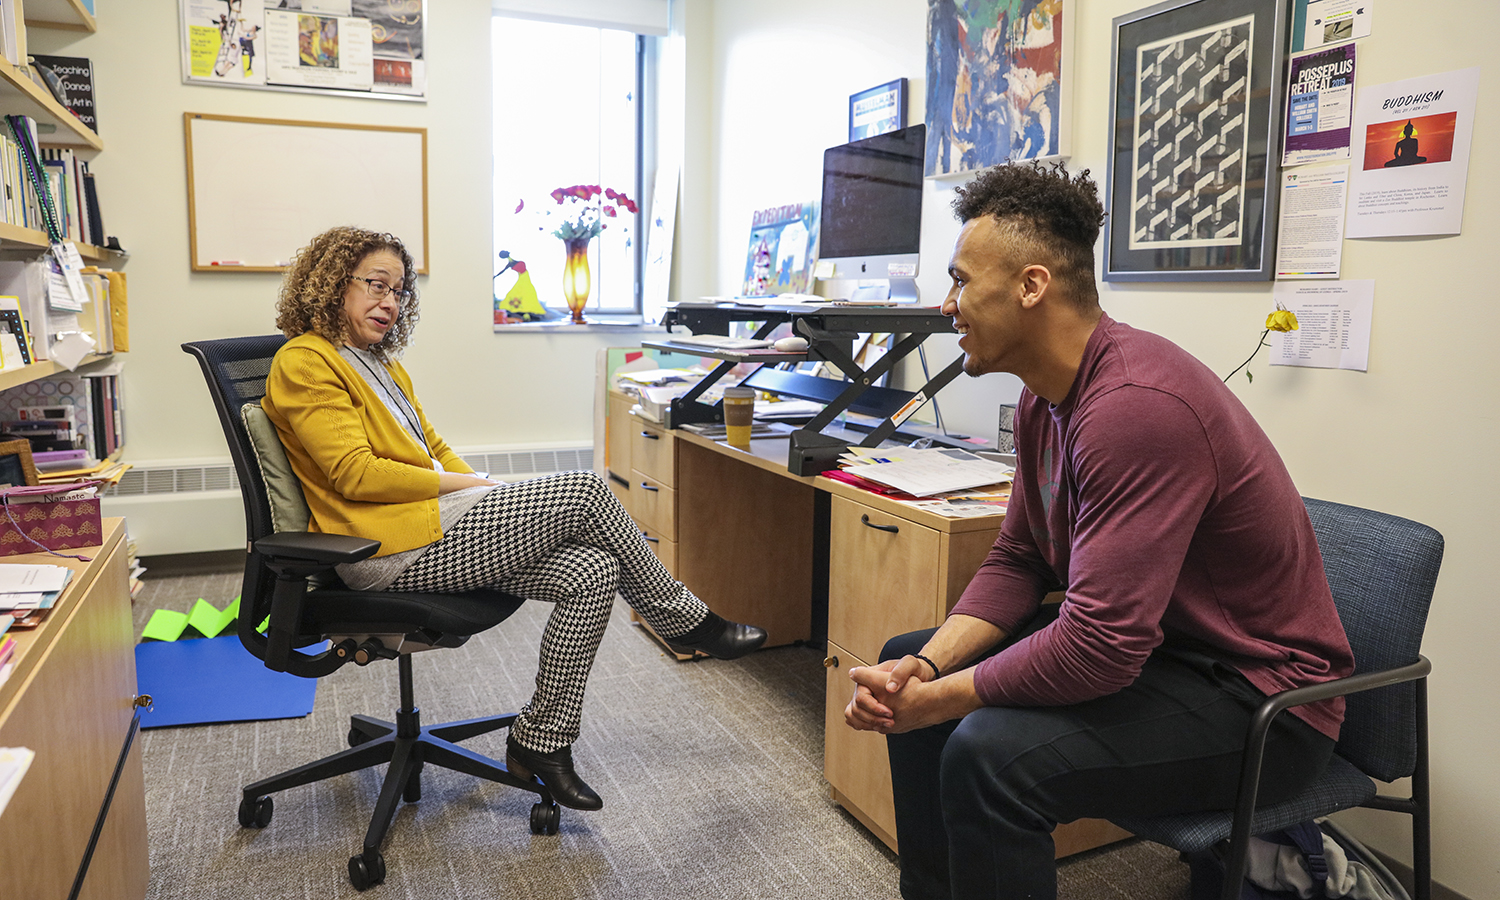 Dante Kimbrough '22 meets with his adviser, Professor of Dance Donna Davenport, in Davenport's office in the Gearan Center for the Performing Arts.